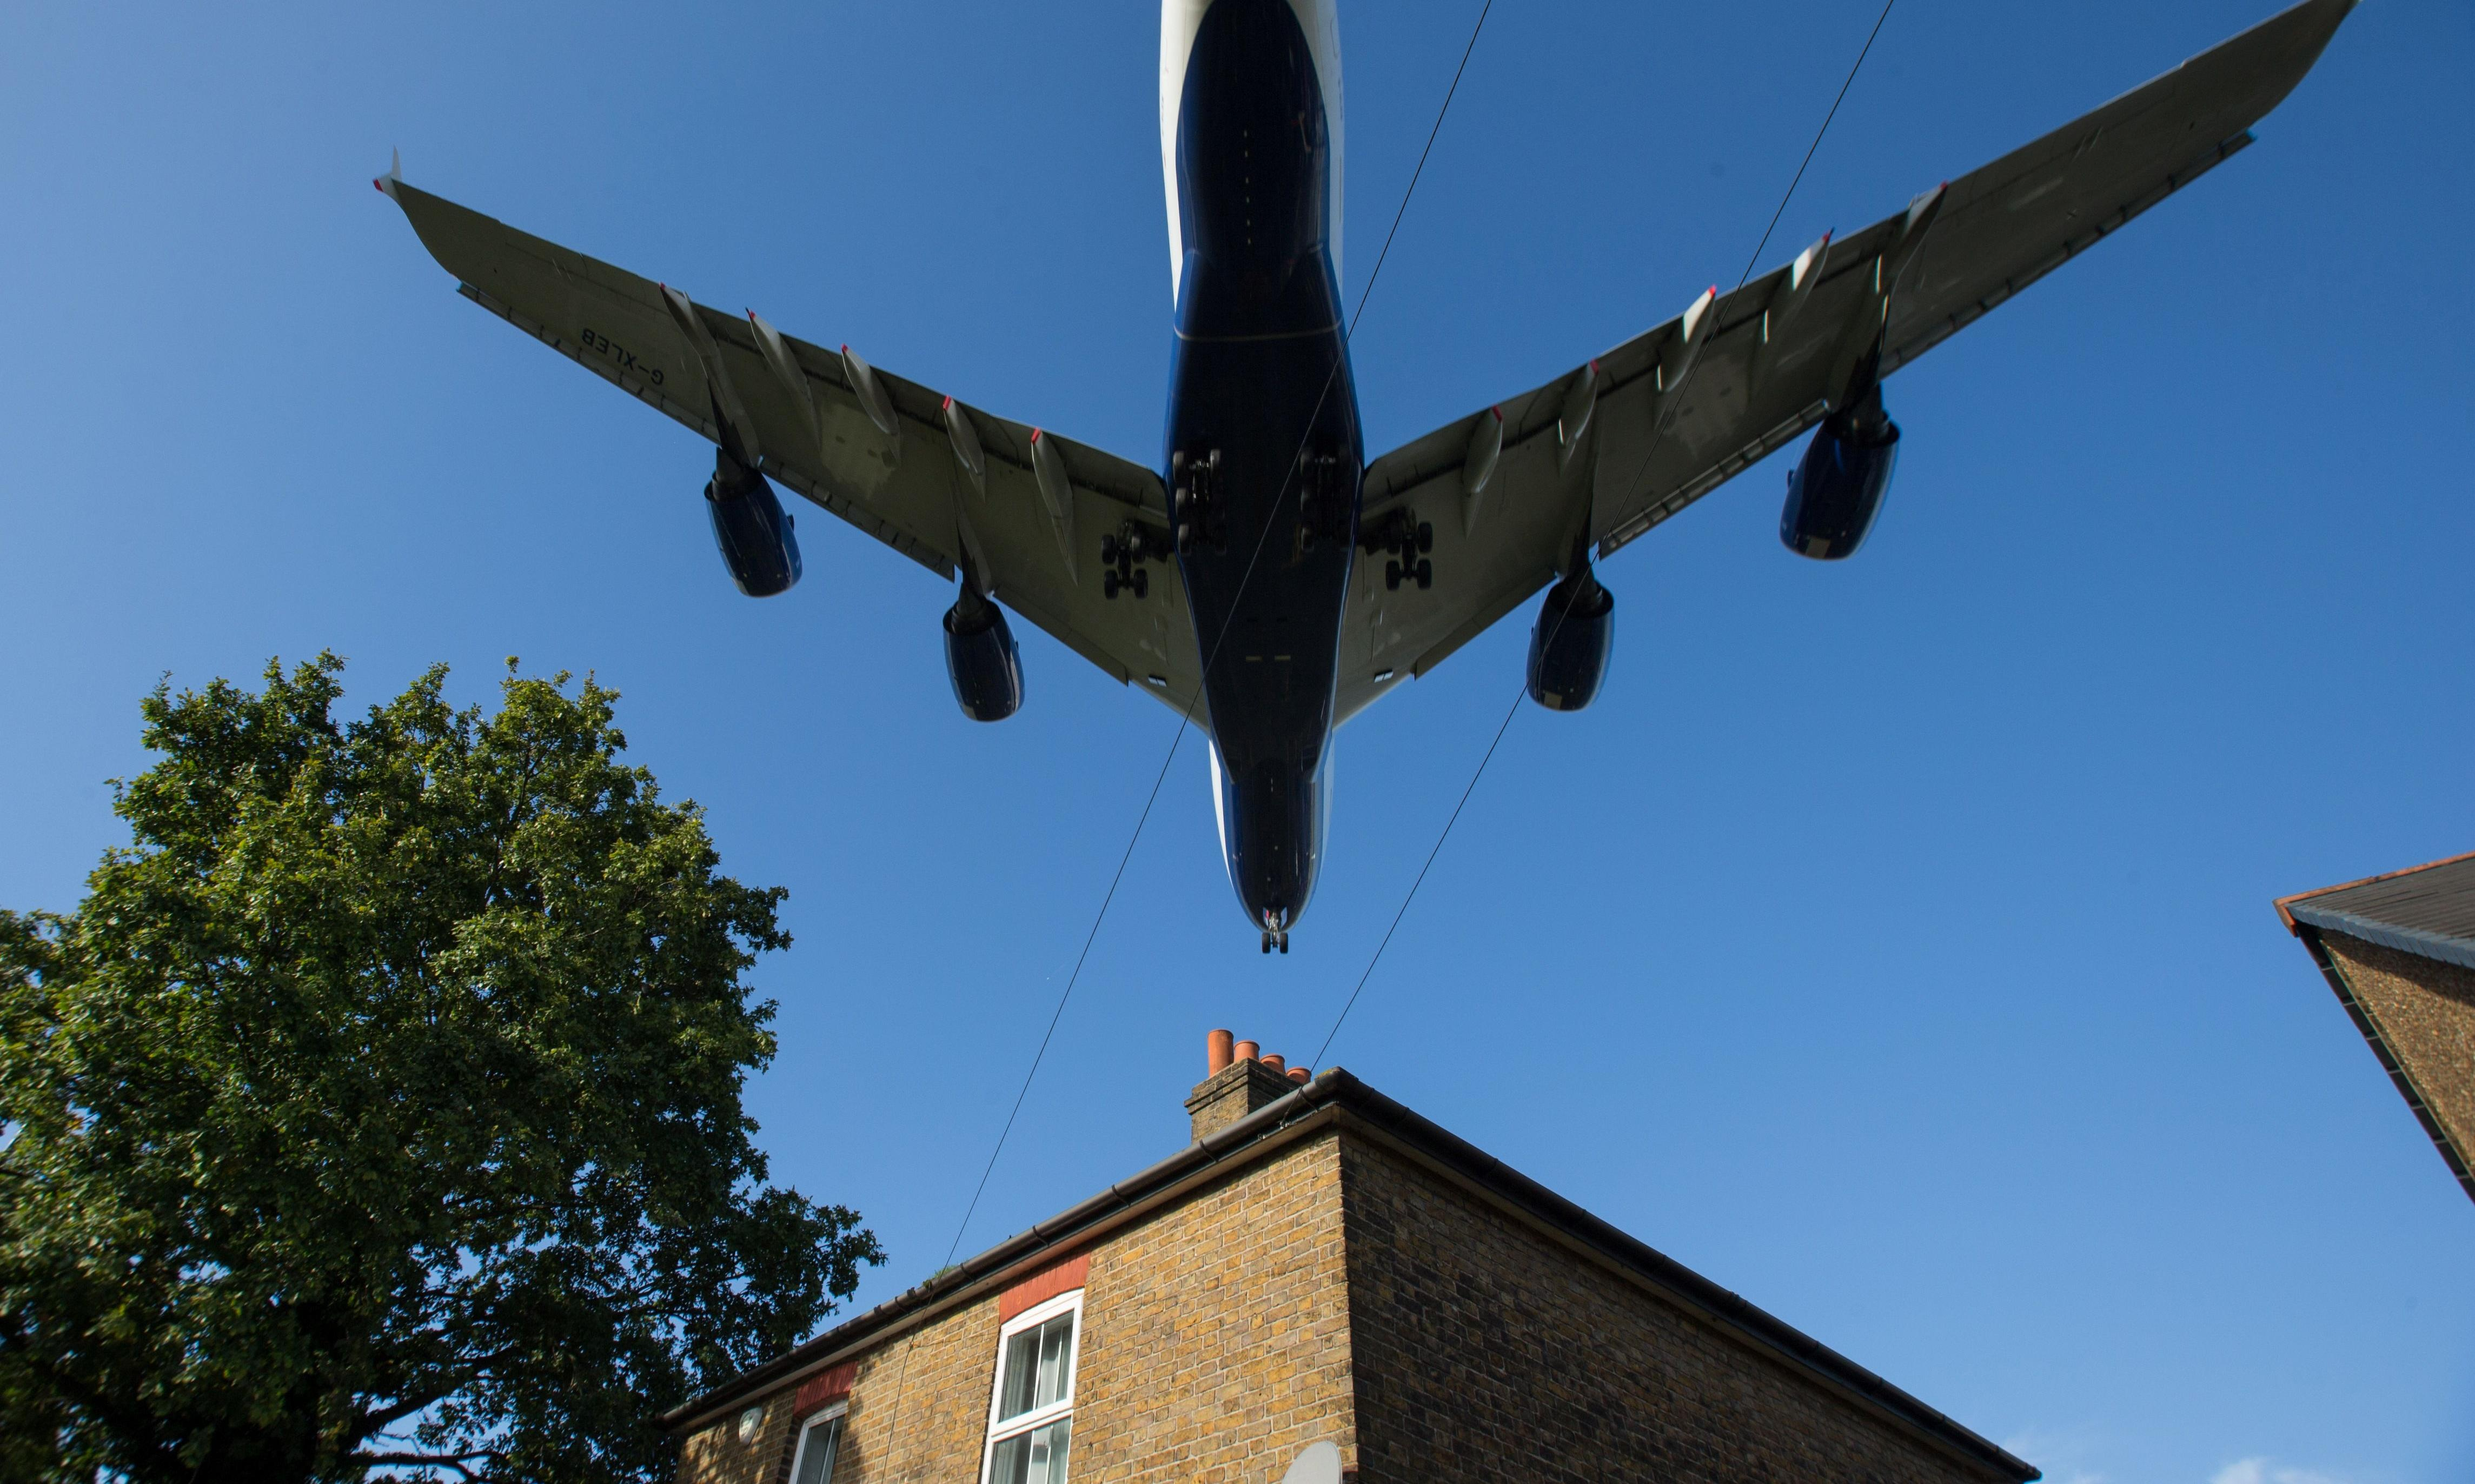 Heathrow's expansion plans make a mockery of the zero emissions strategy